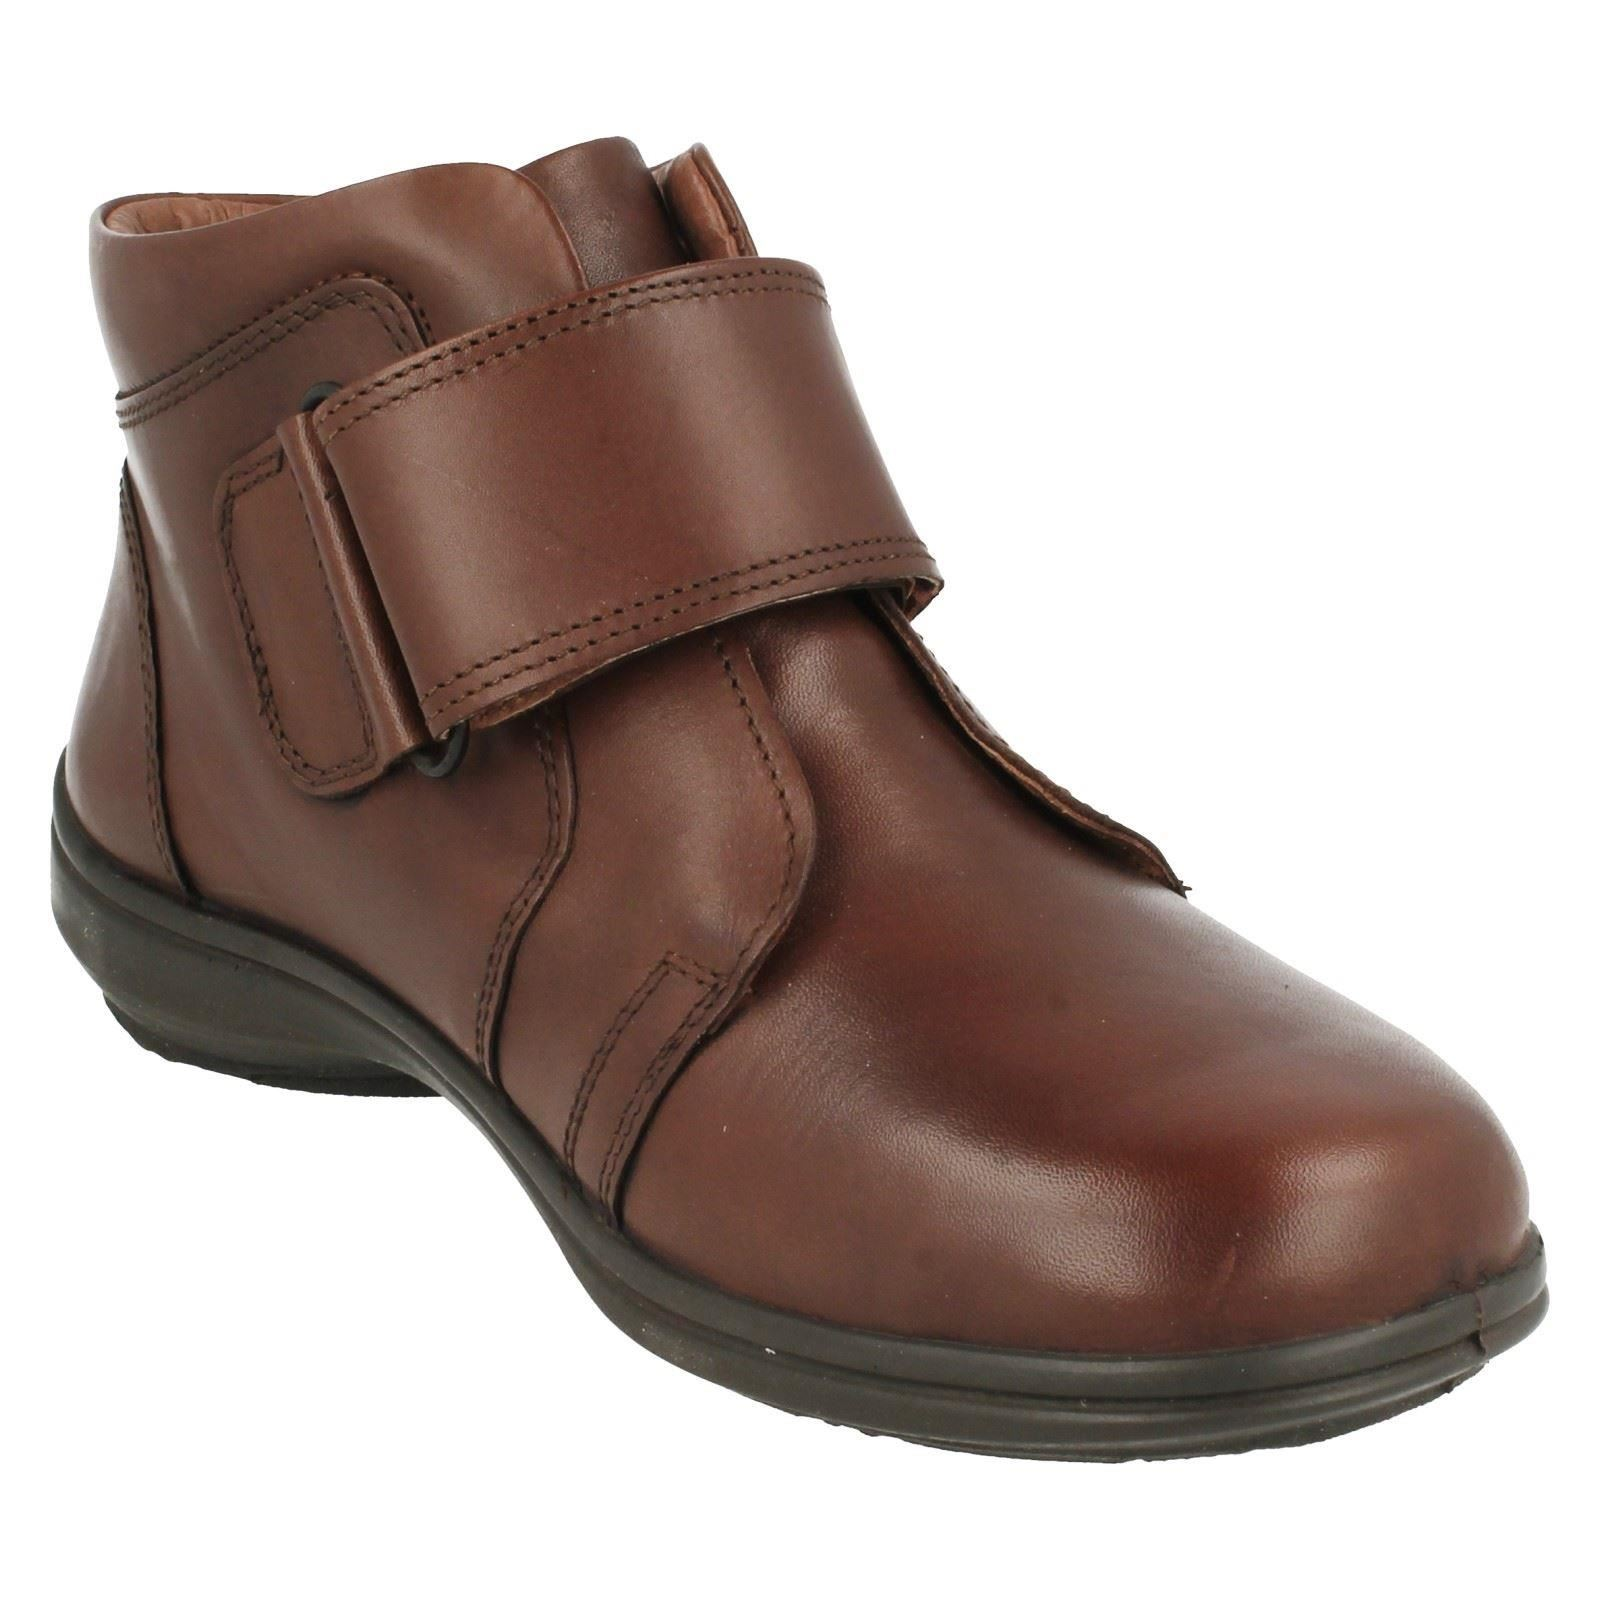 B Easy Ladies Ankle Boots Path Brown Zf6PAz